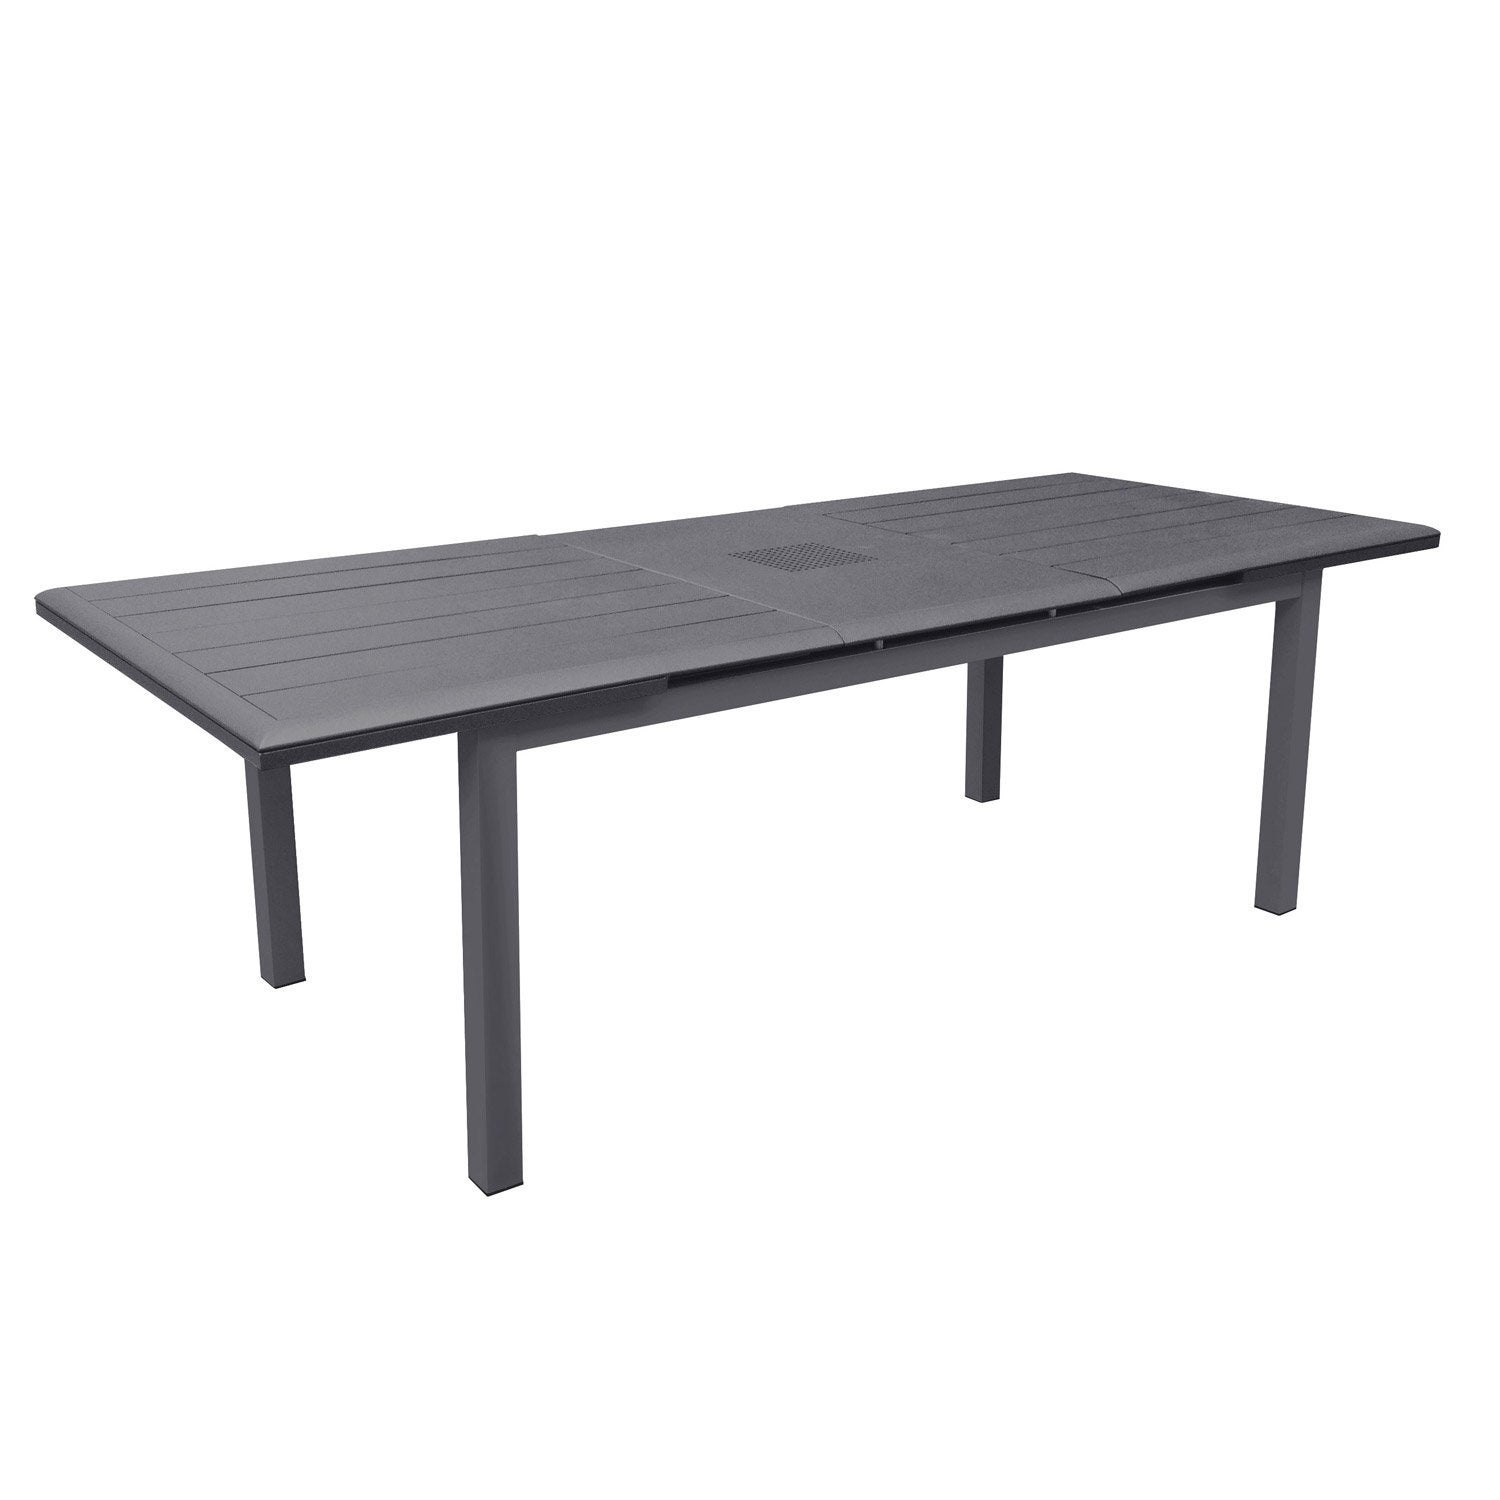 Table de jardin louisiane rectangulaire gris 6 8 personnes for Dimension table 6 personnes